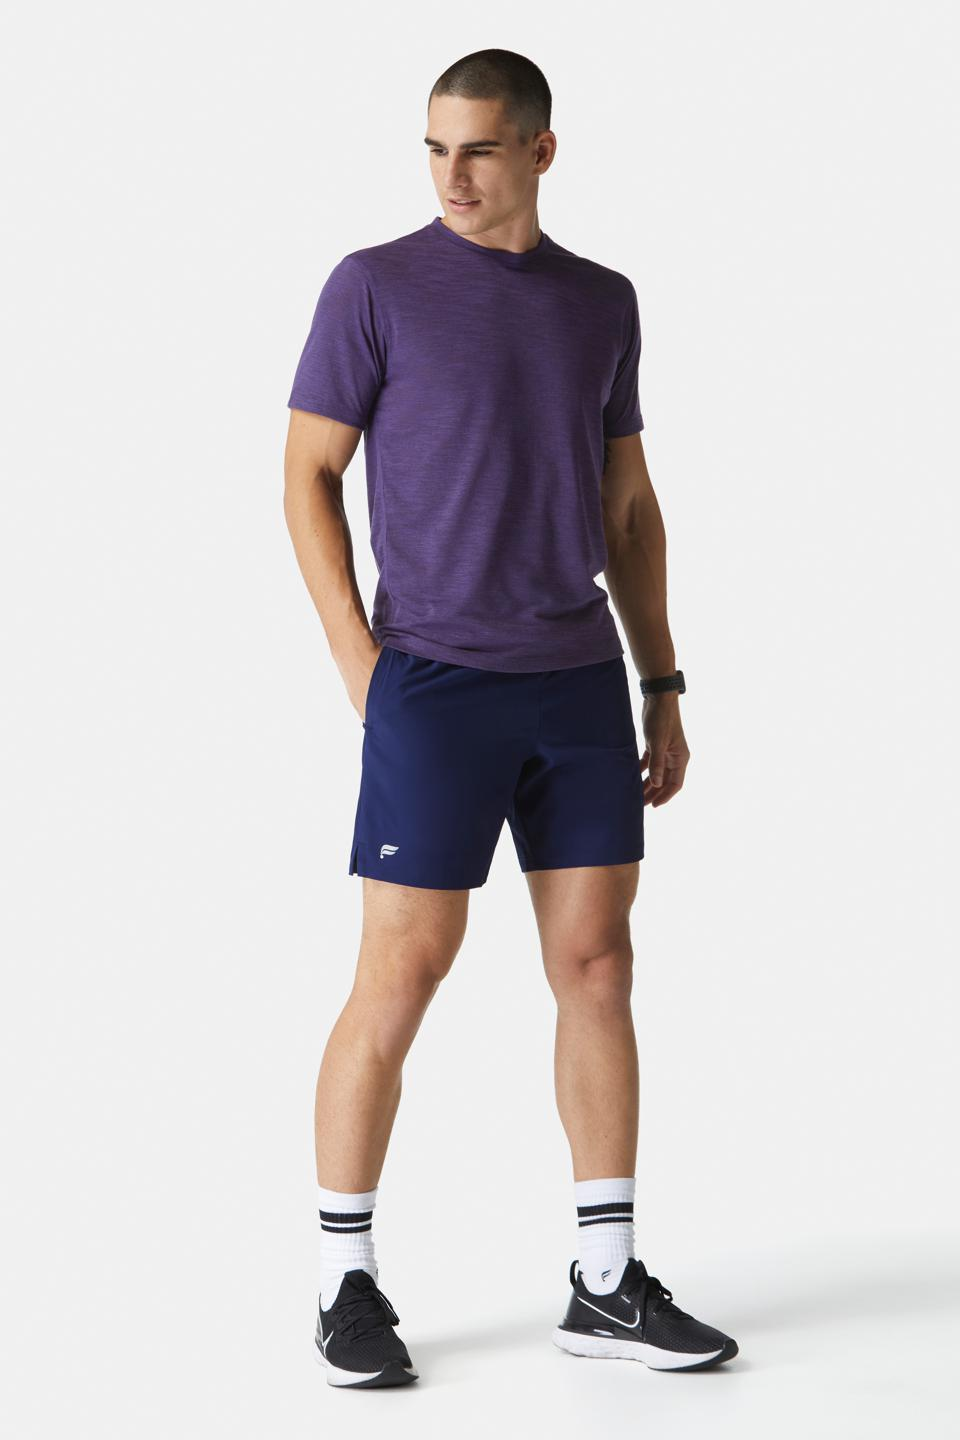 Fabletics Men Status 2-Piece Kit featuring The Front Row Tee in dusty purple & Fundamental Short in navy